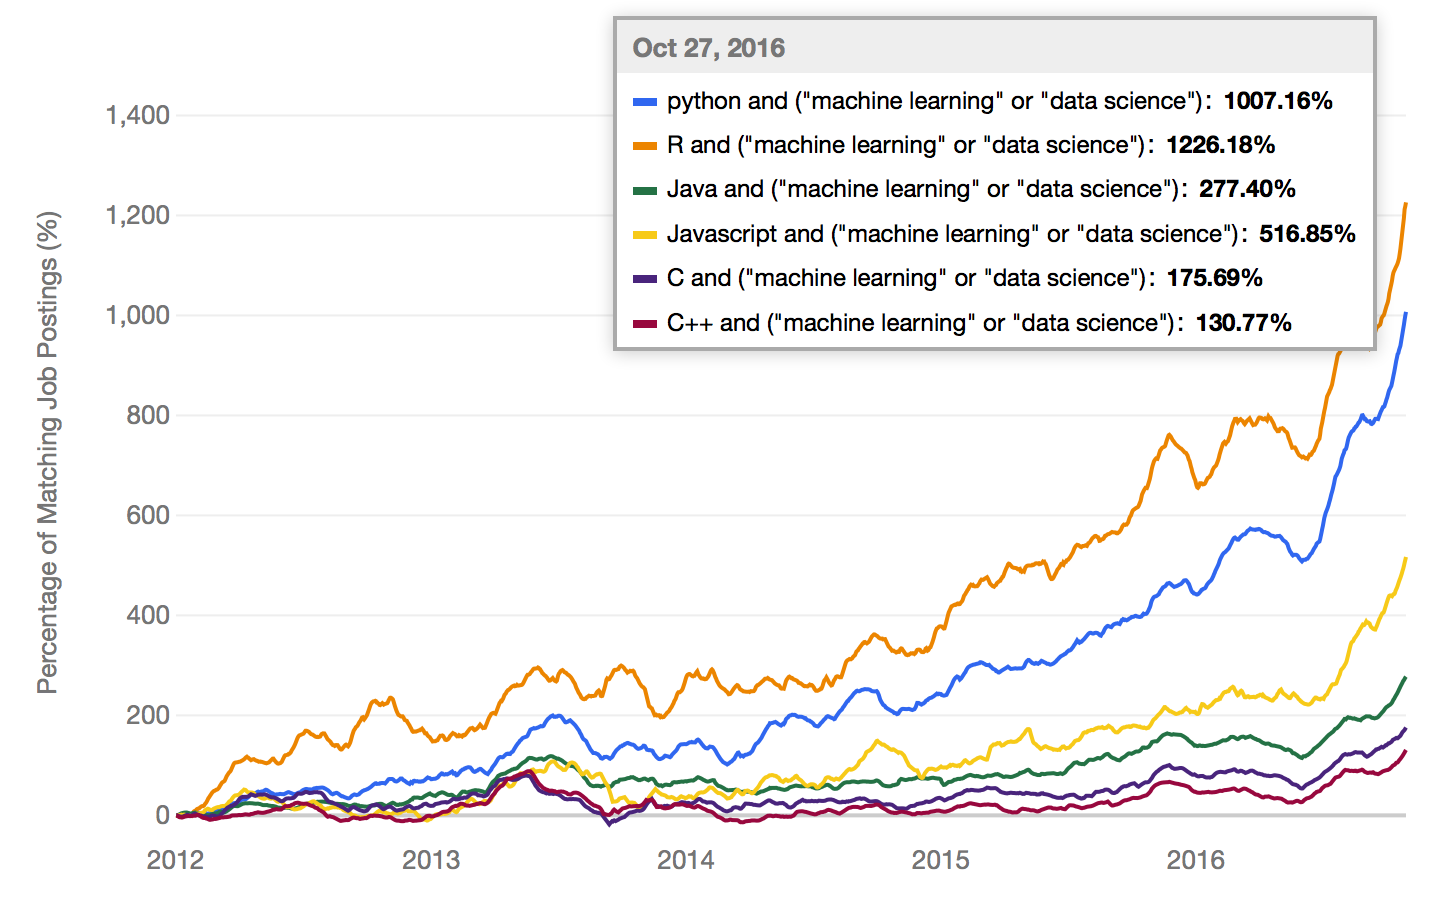 The Most Popular Language For Machine Learning Is - The most popular language